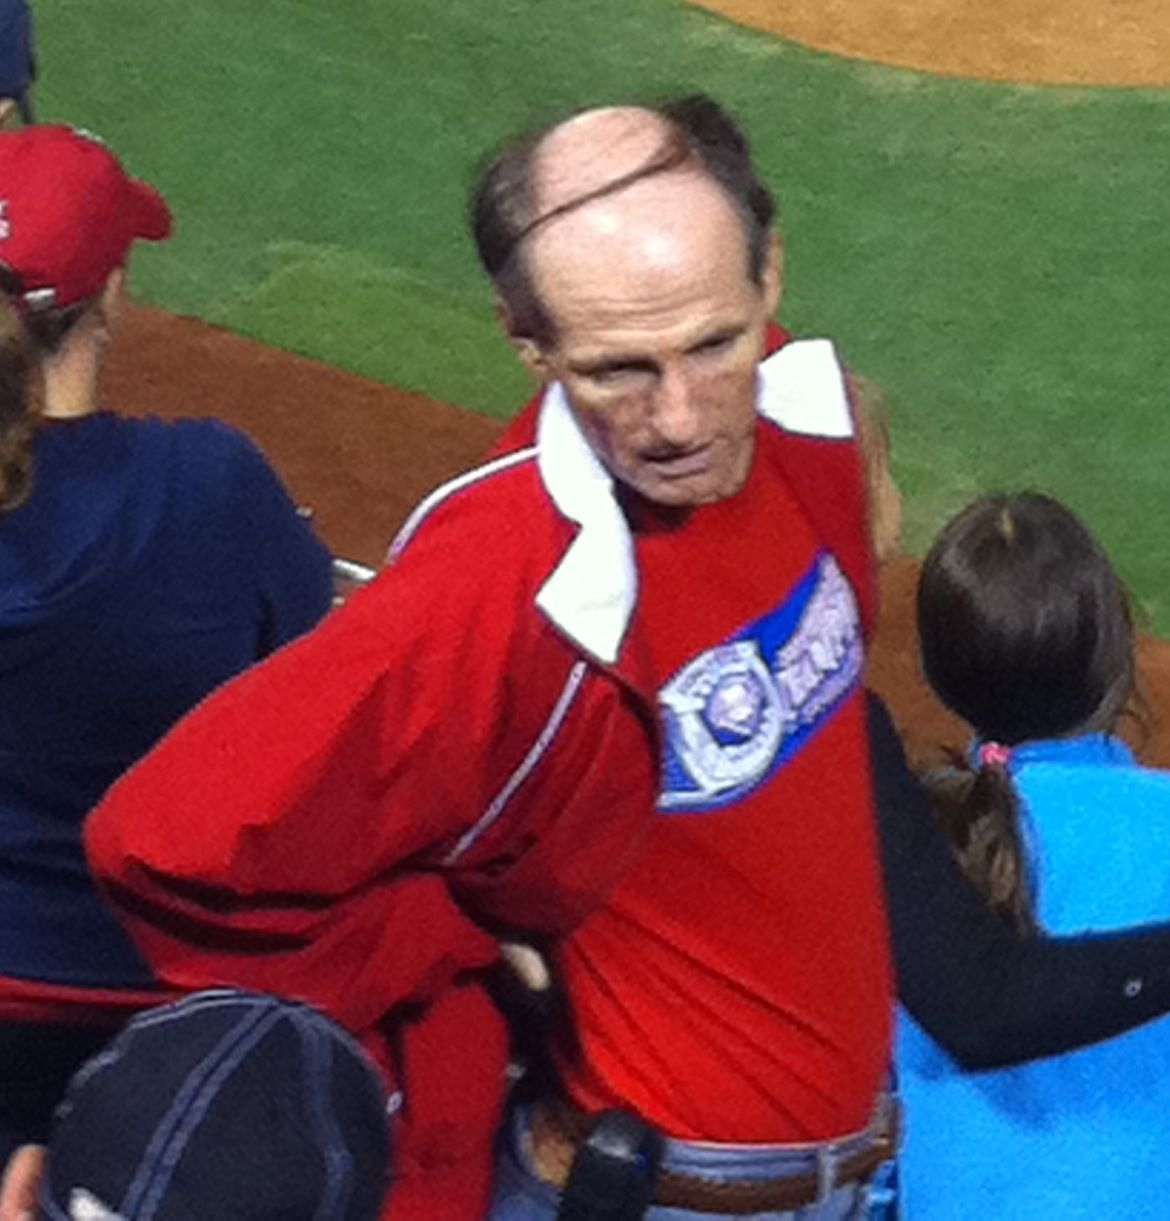 Your combover...I don't think it's working. - Imgur